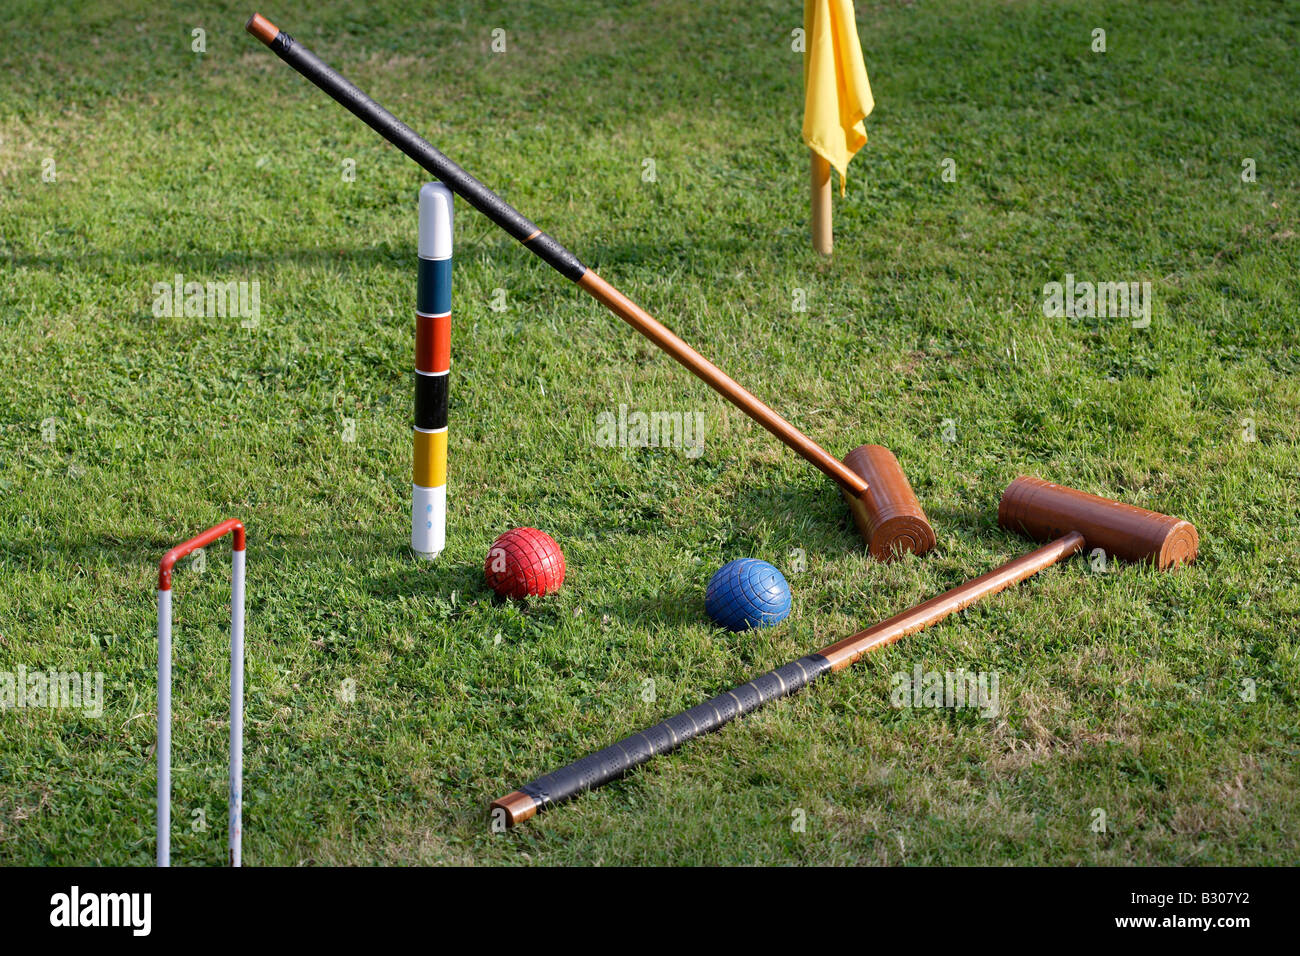 Croquet mallets and balls on a lawn - Stock Image